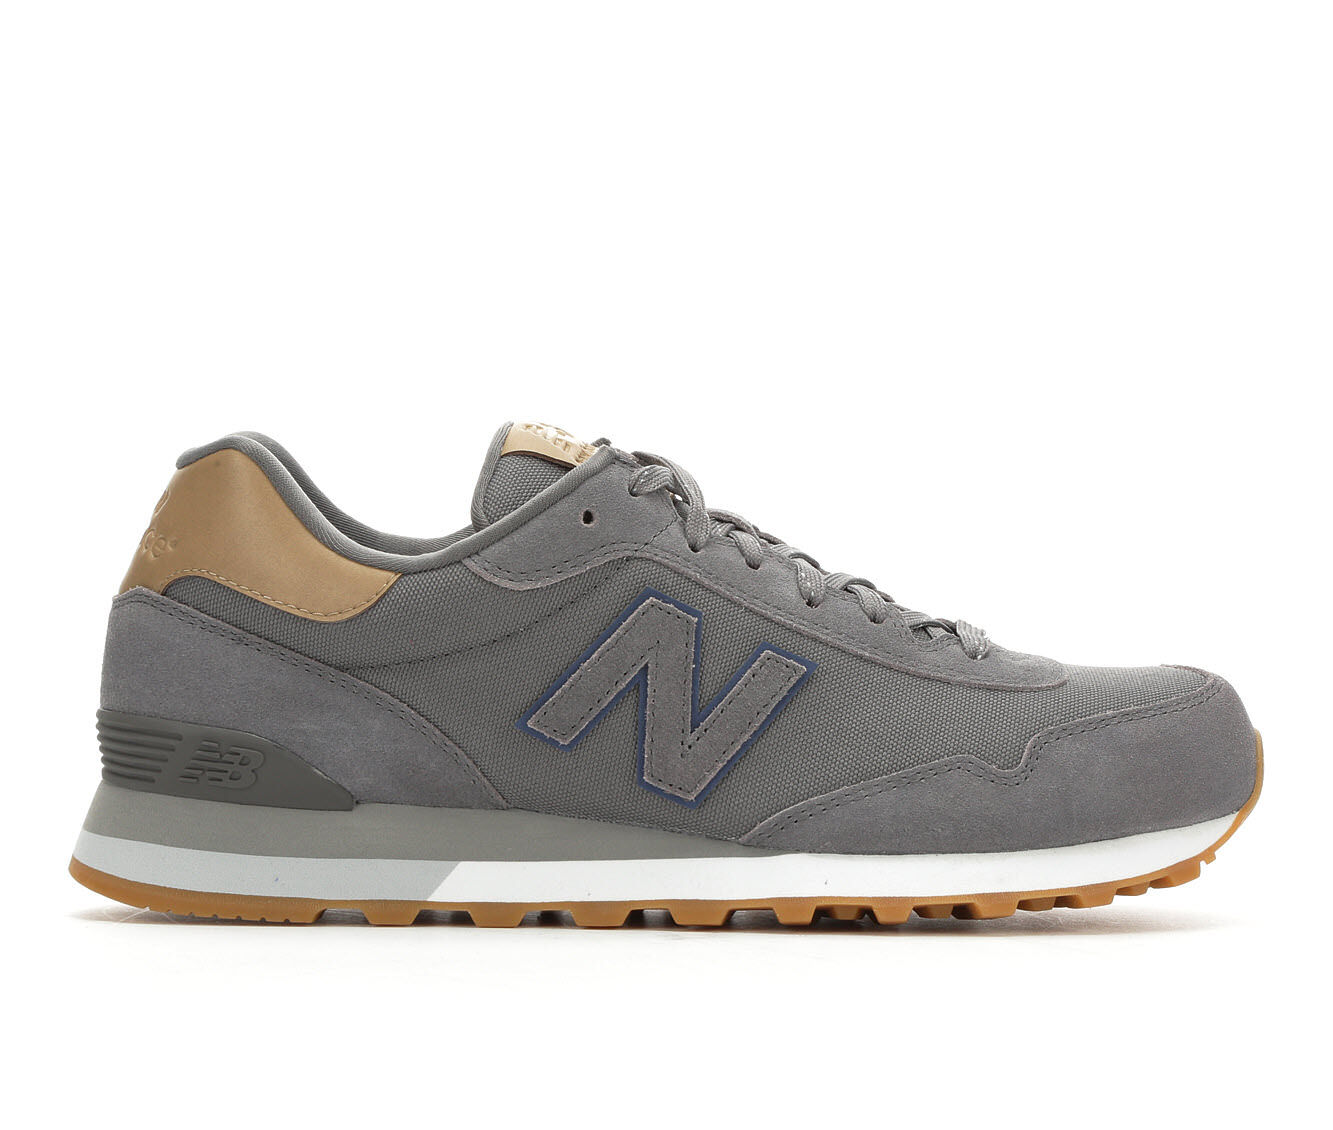 For Your Selection Men's New Balance ML515 Retro Sneakers Gry/Brown/Gum